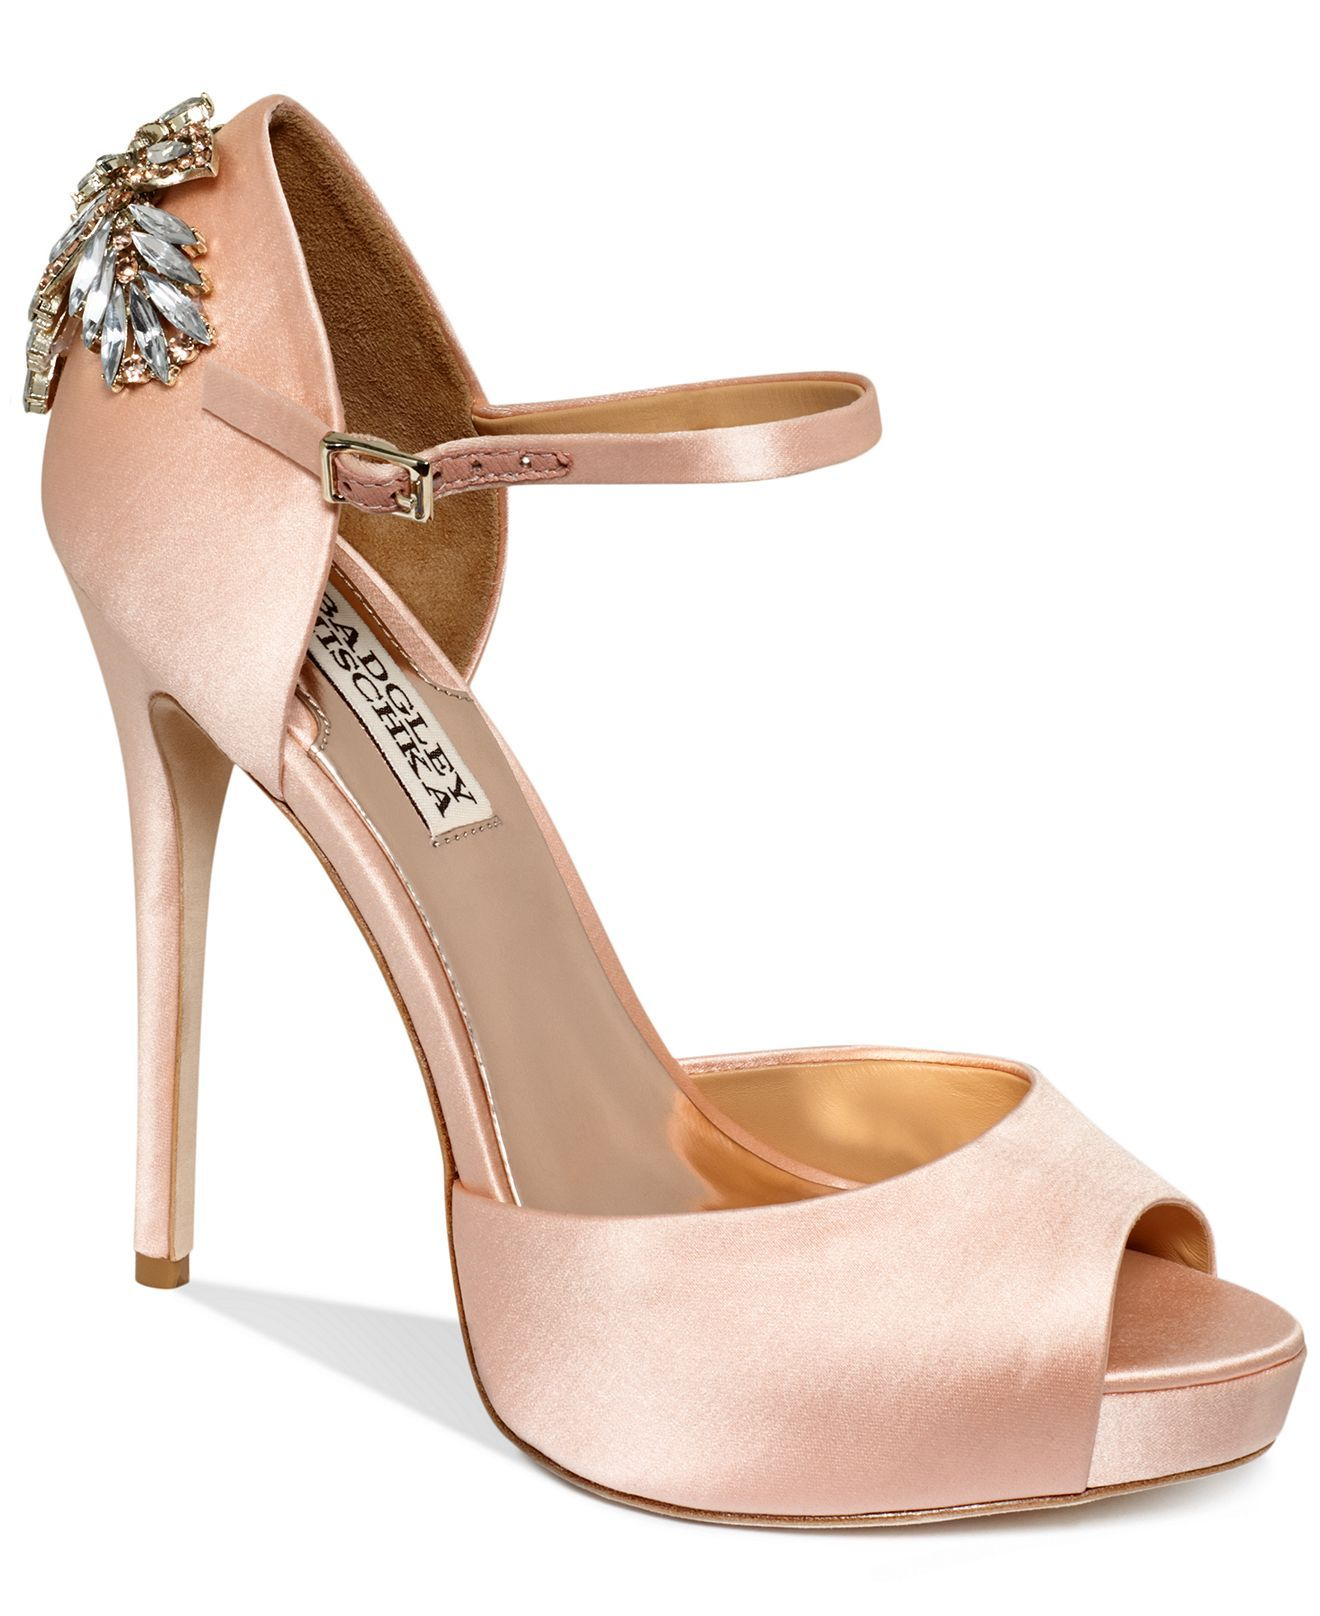 Badgley Mischka Shoes Nessa High Heel Evening Pumps Evening